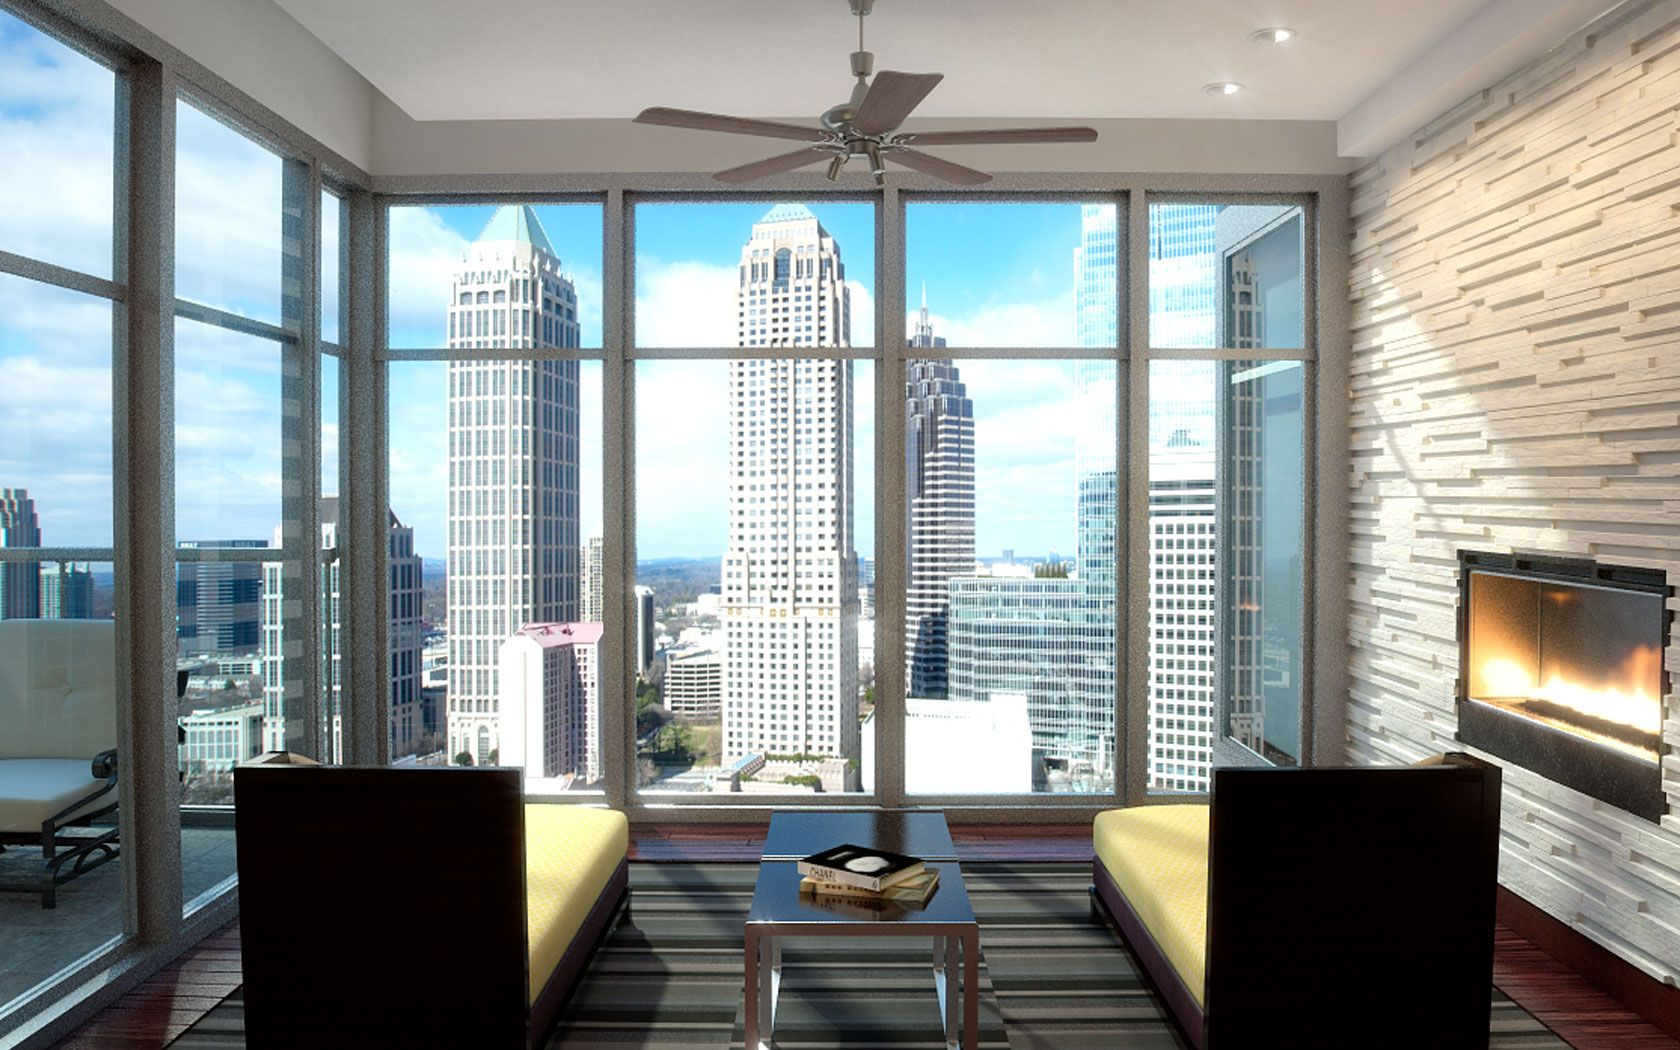 77 12th - Amenities | Tiny apartment living, High rise ...